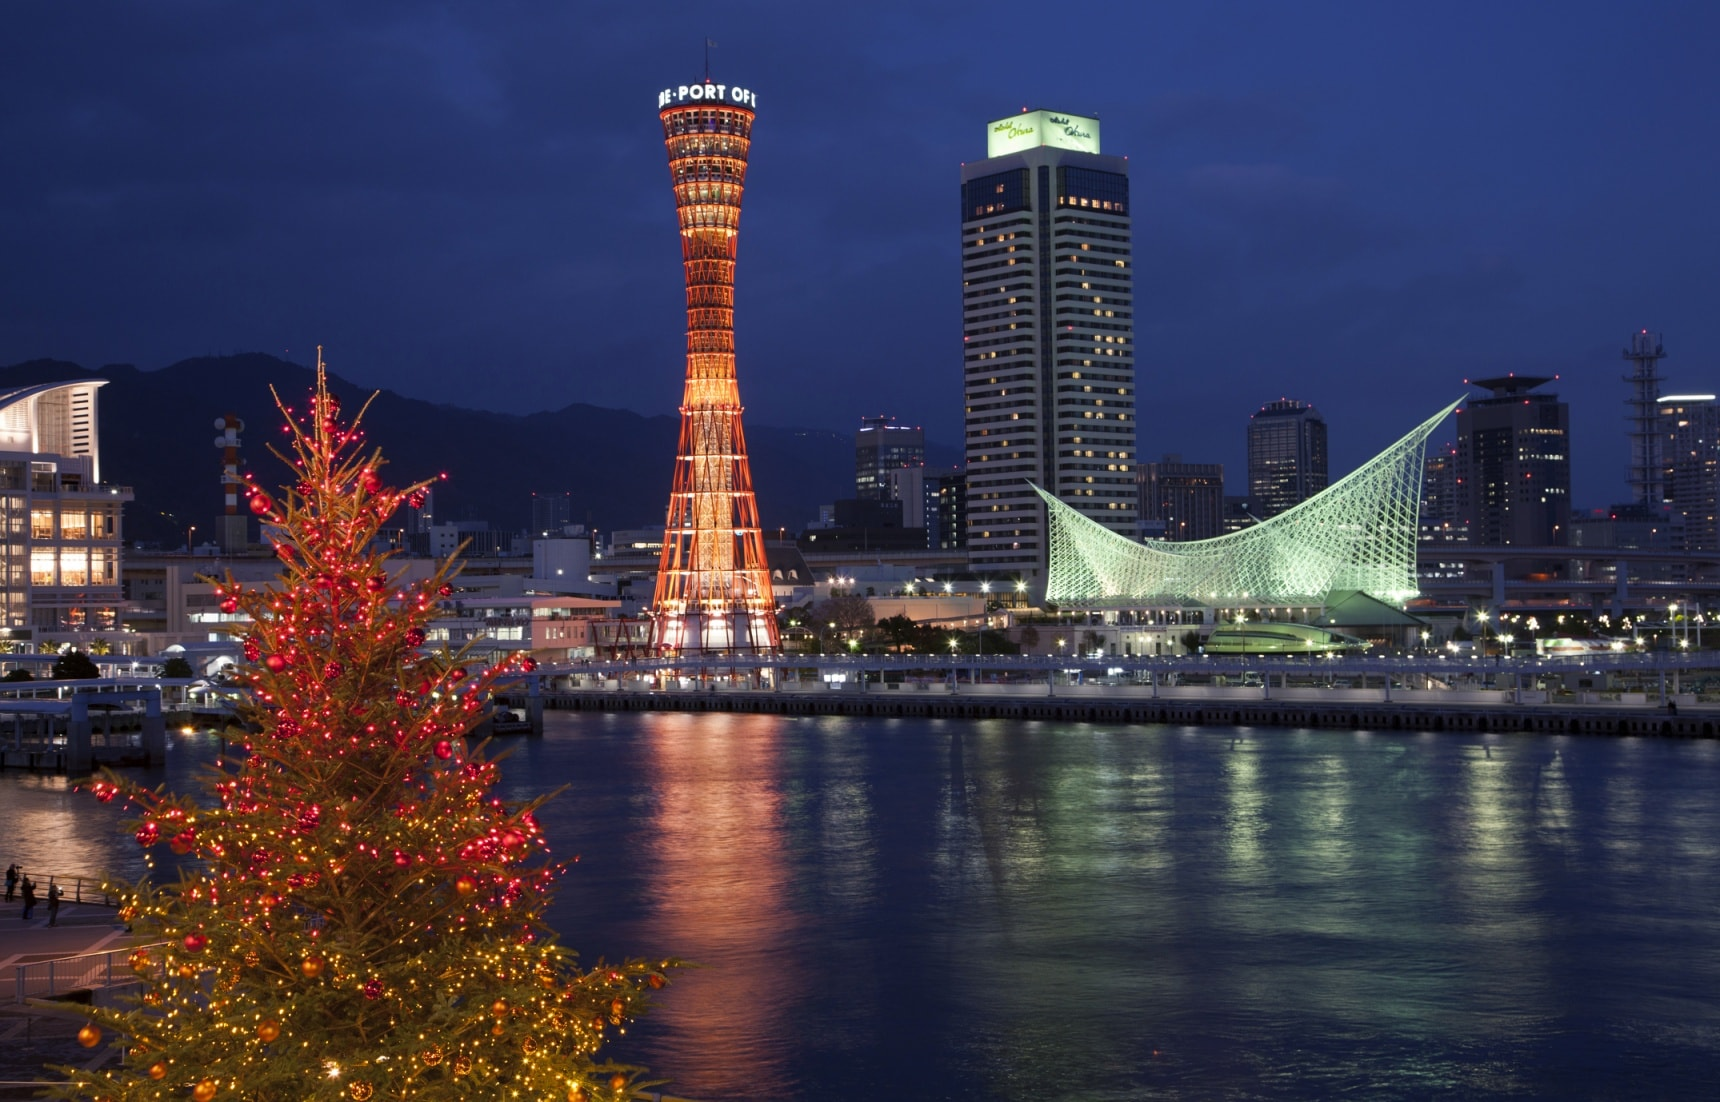 5 Key Sights to See in Kobe